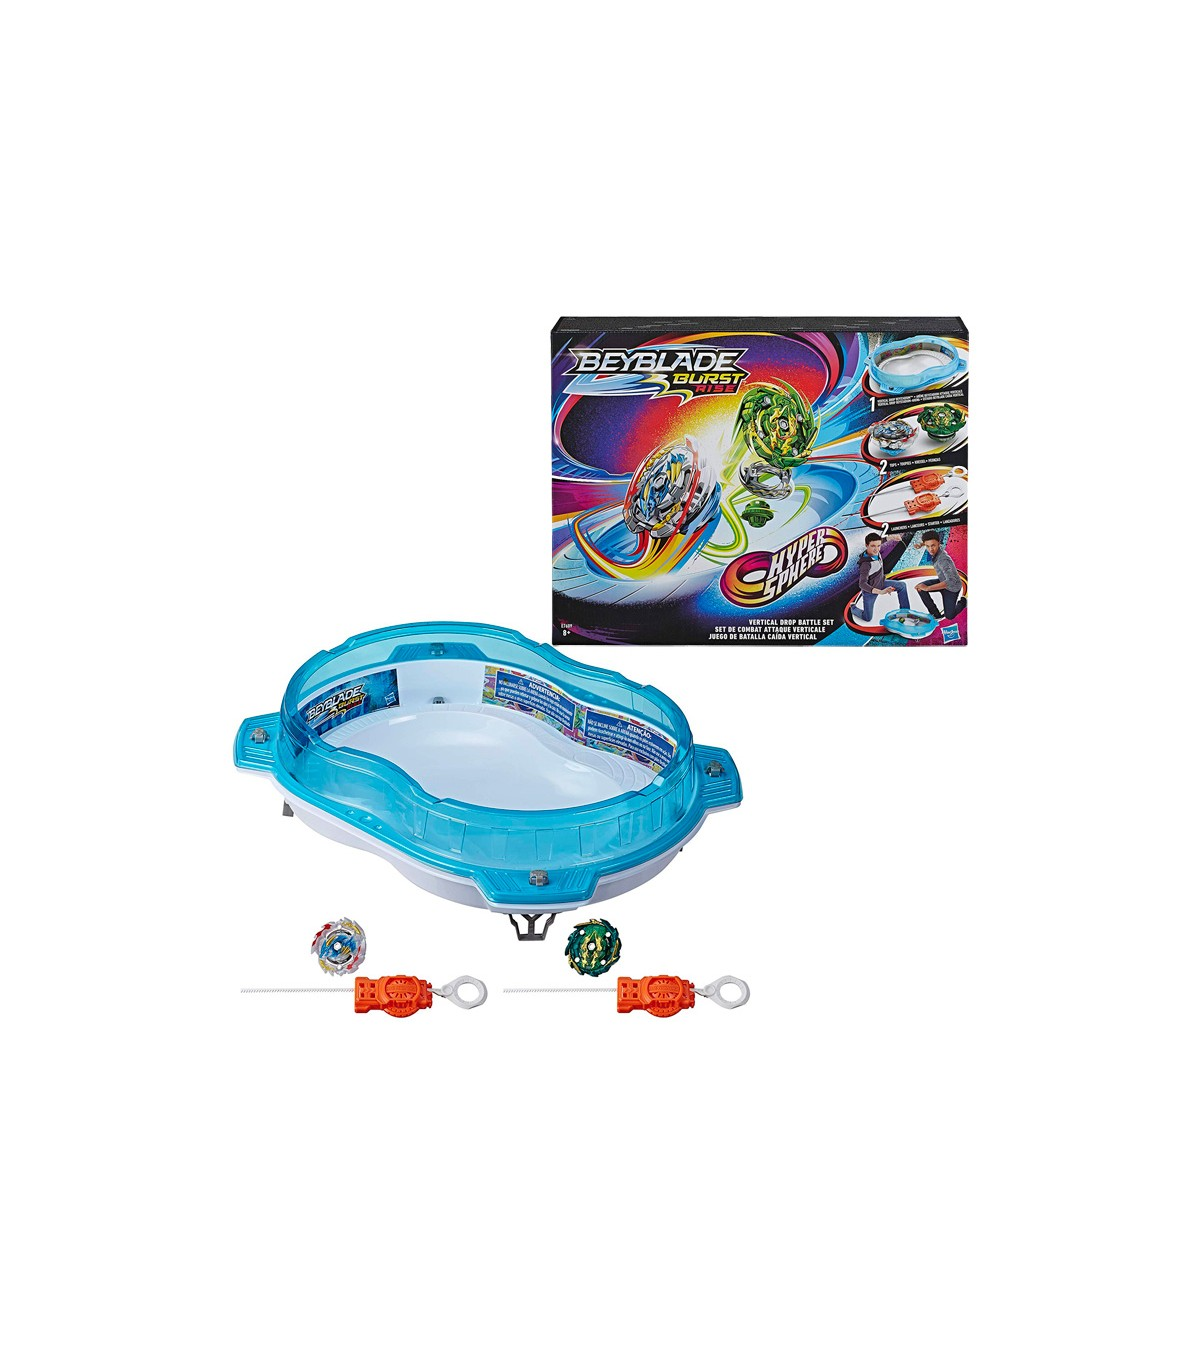 ESTADIO BEYBLADE E7609 V37220